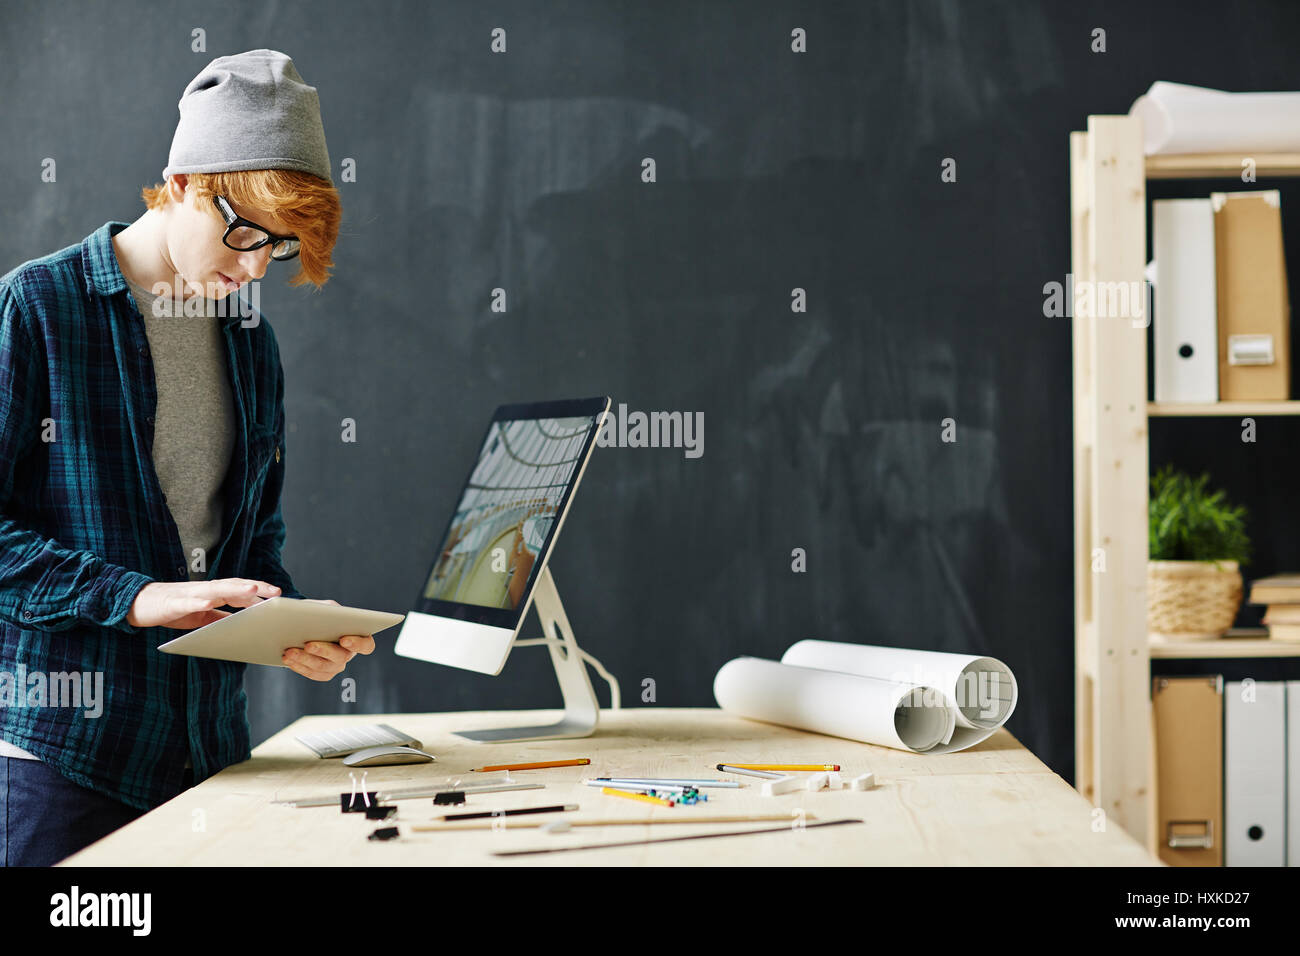 Architect Student red haired architect student stock photo, royalty free image